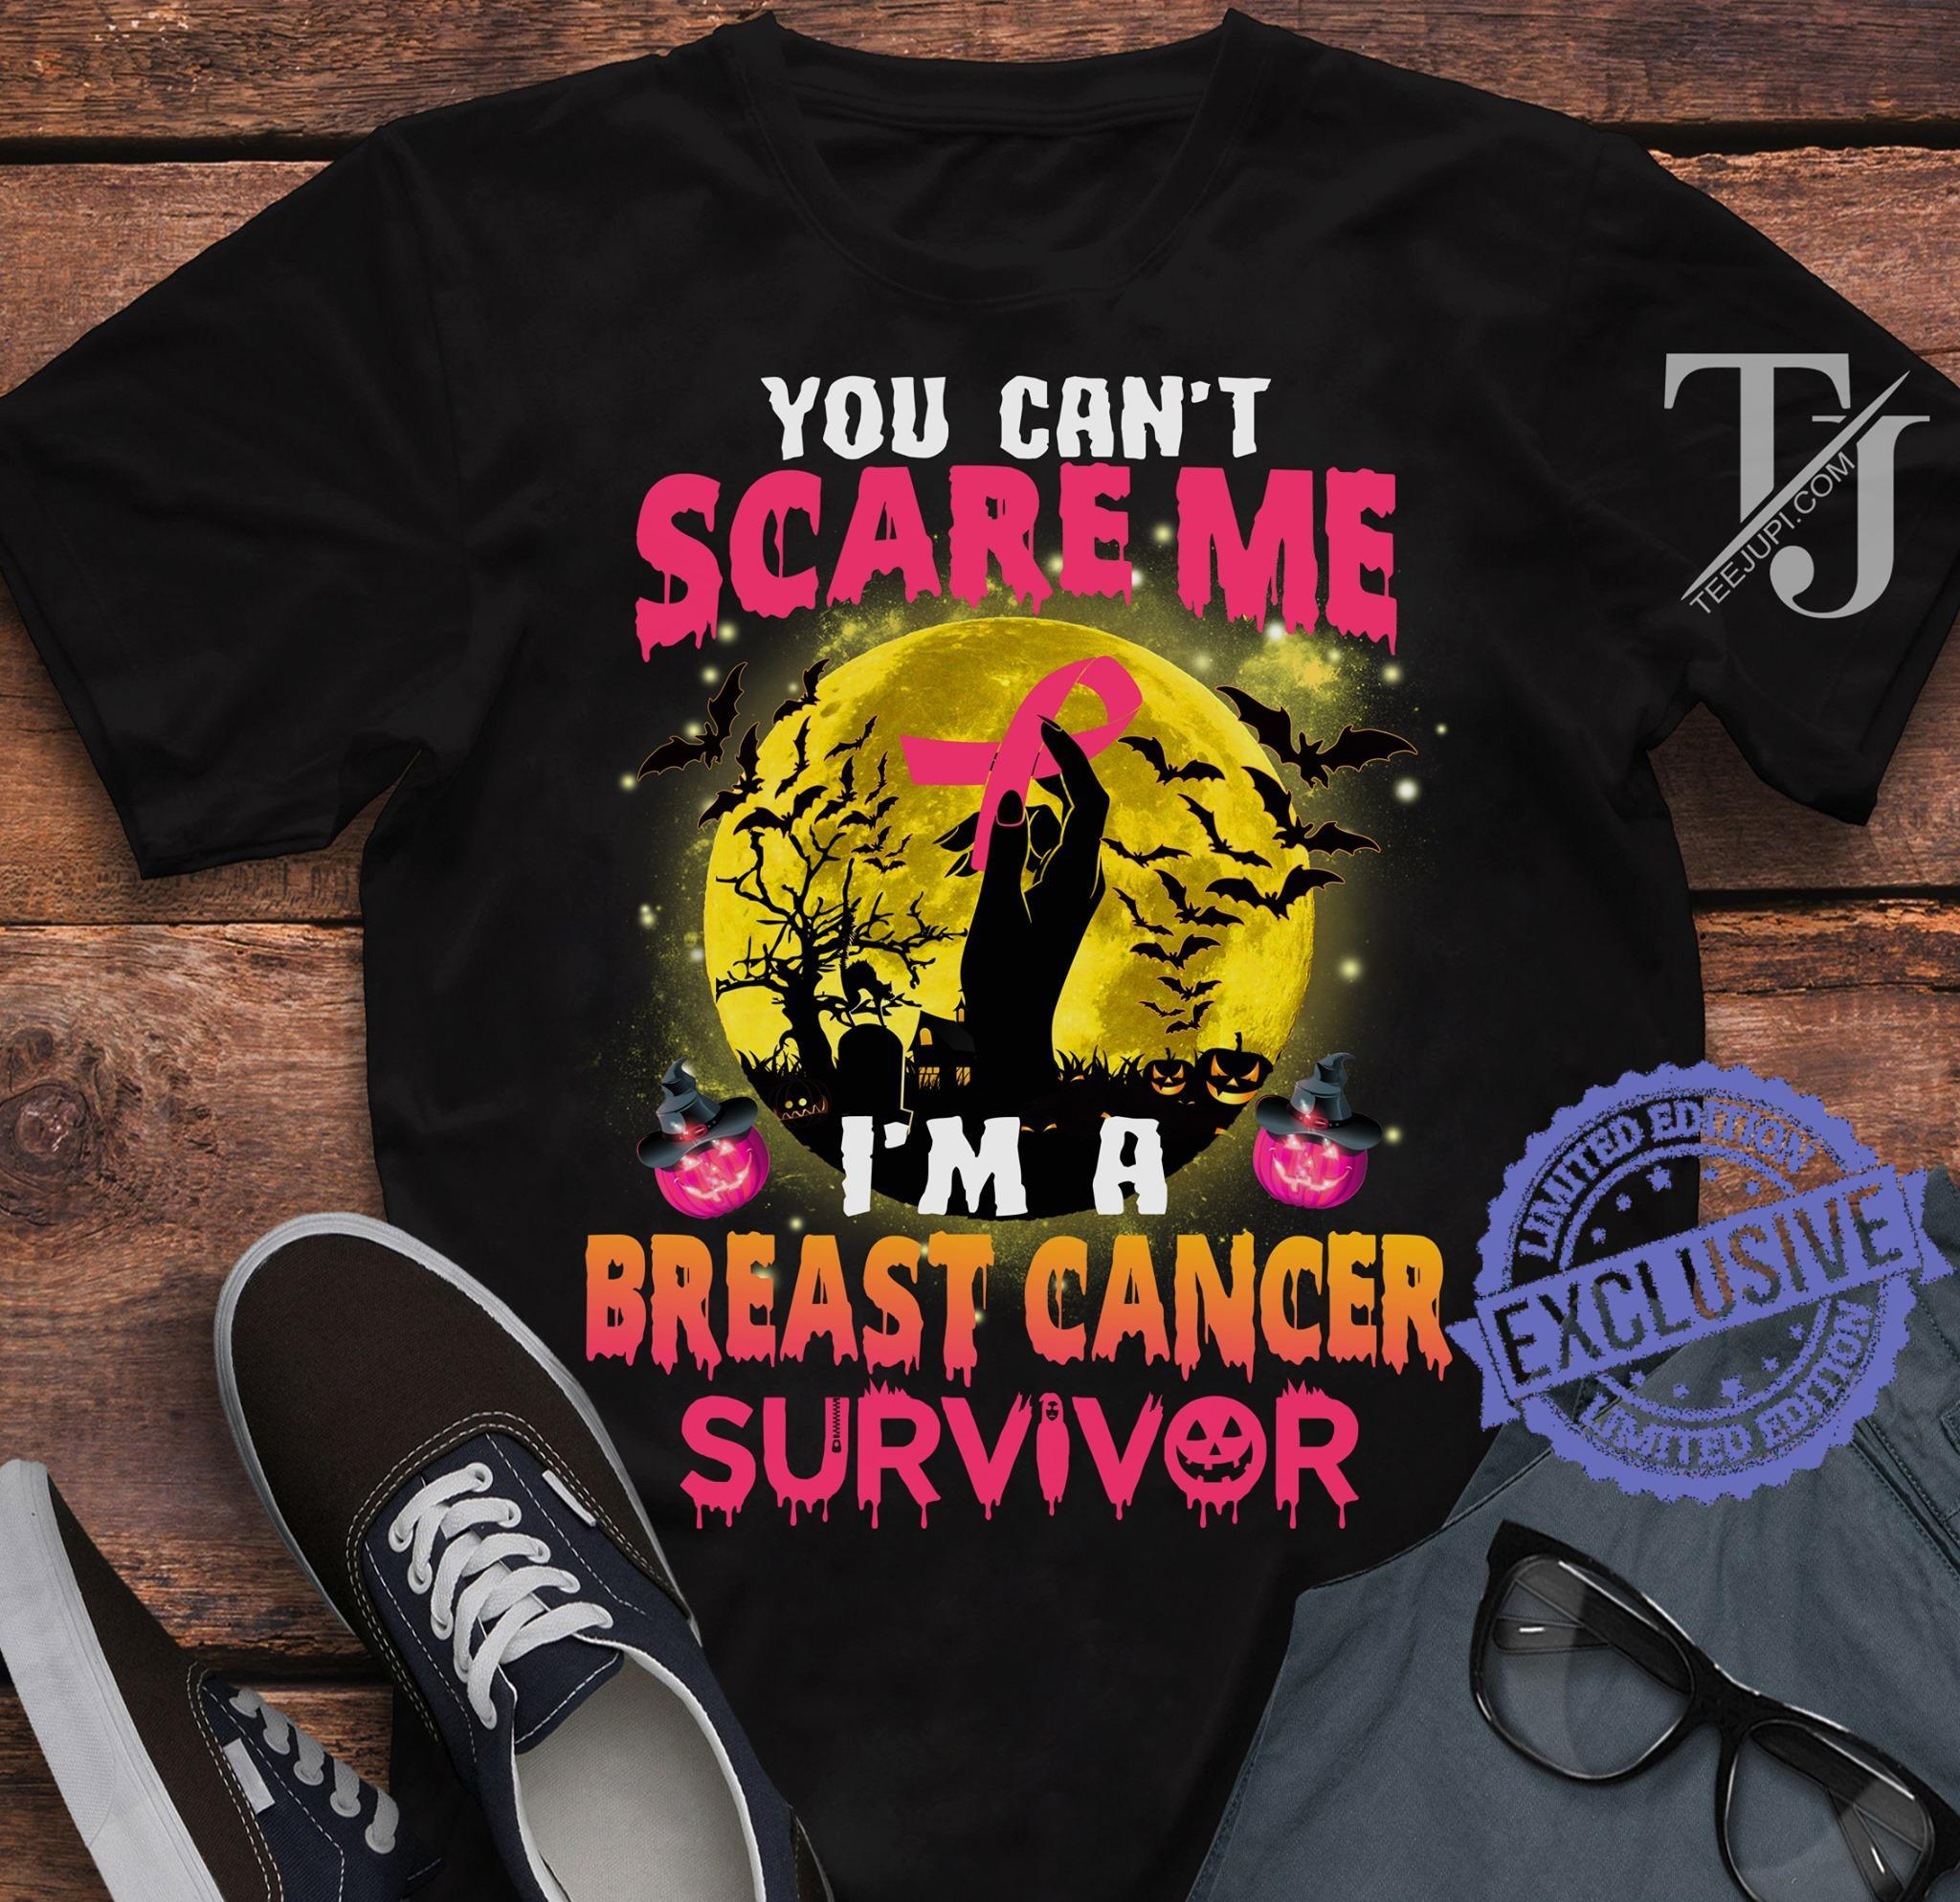 You can't scare me i'm a breast caner survivor shirt